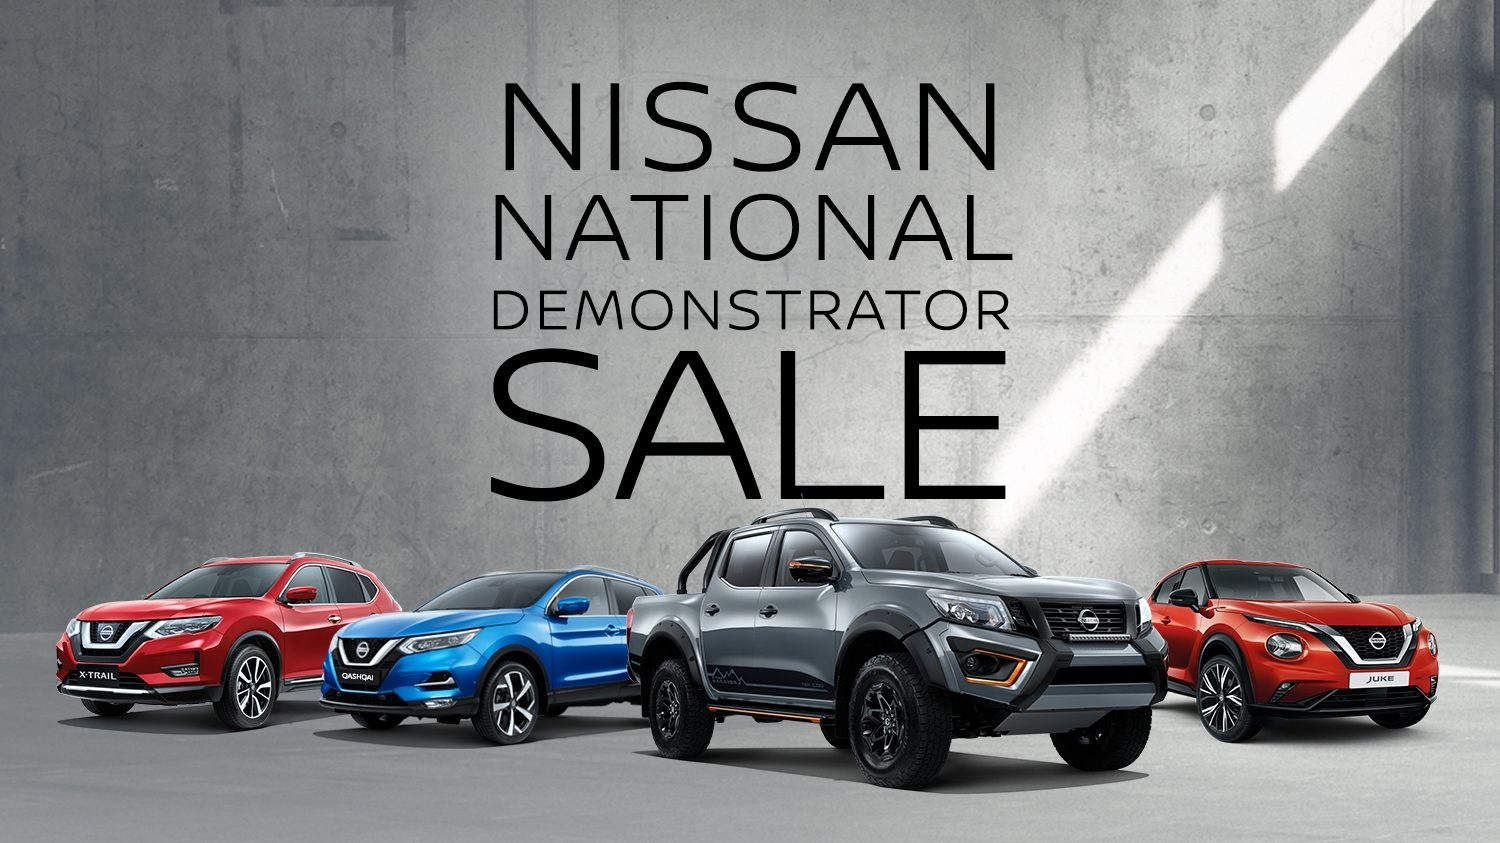 Nissan National Demonstrator Sale